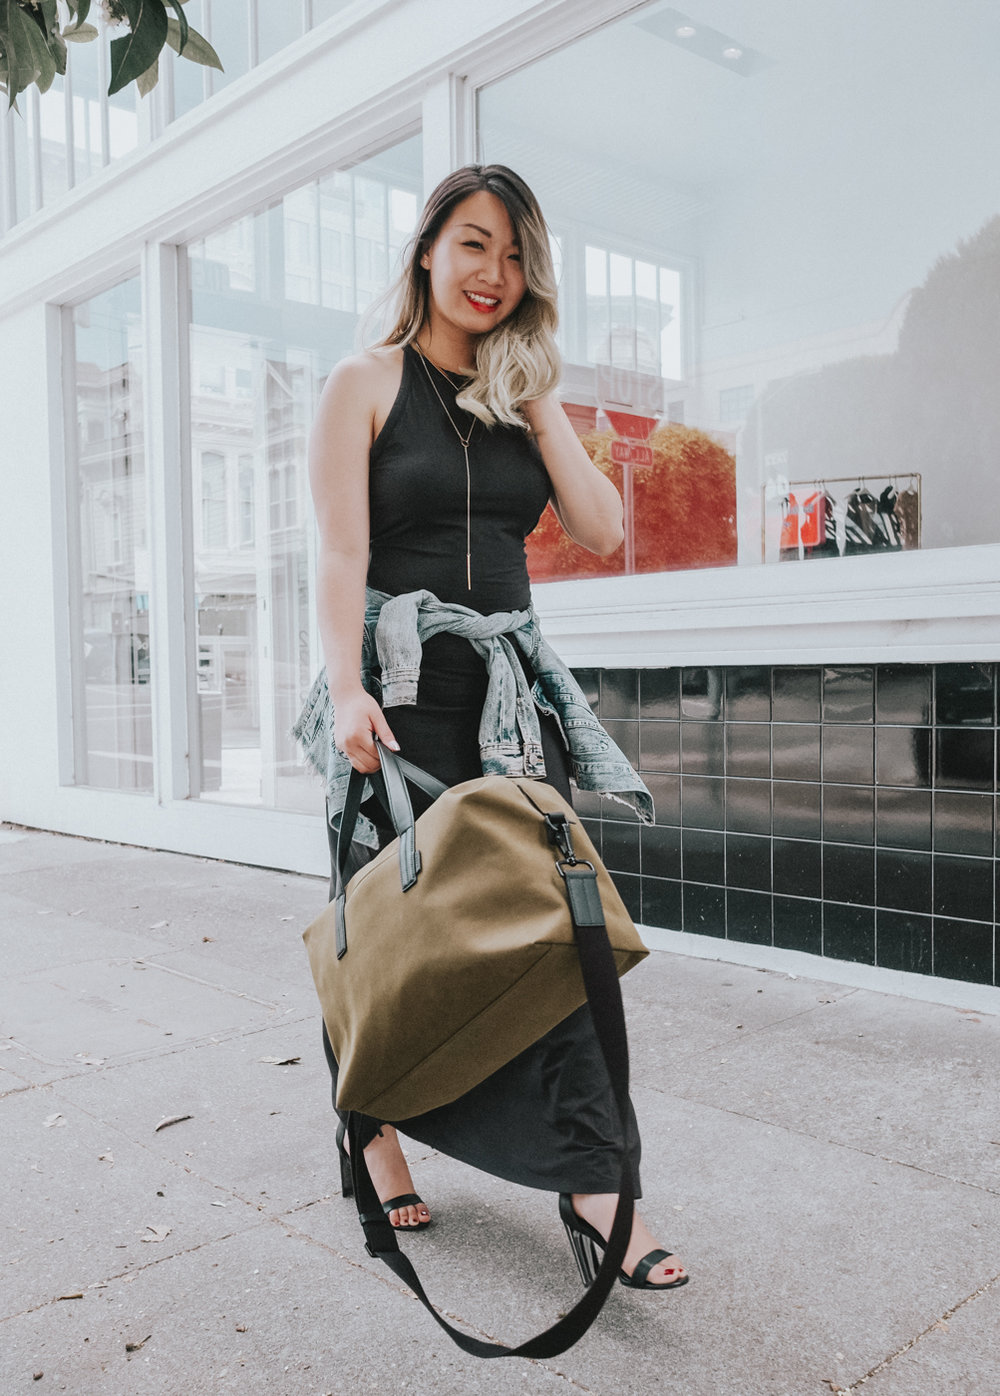 Away The Everywhere Bag in Olive Green | The Chic Diary